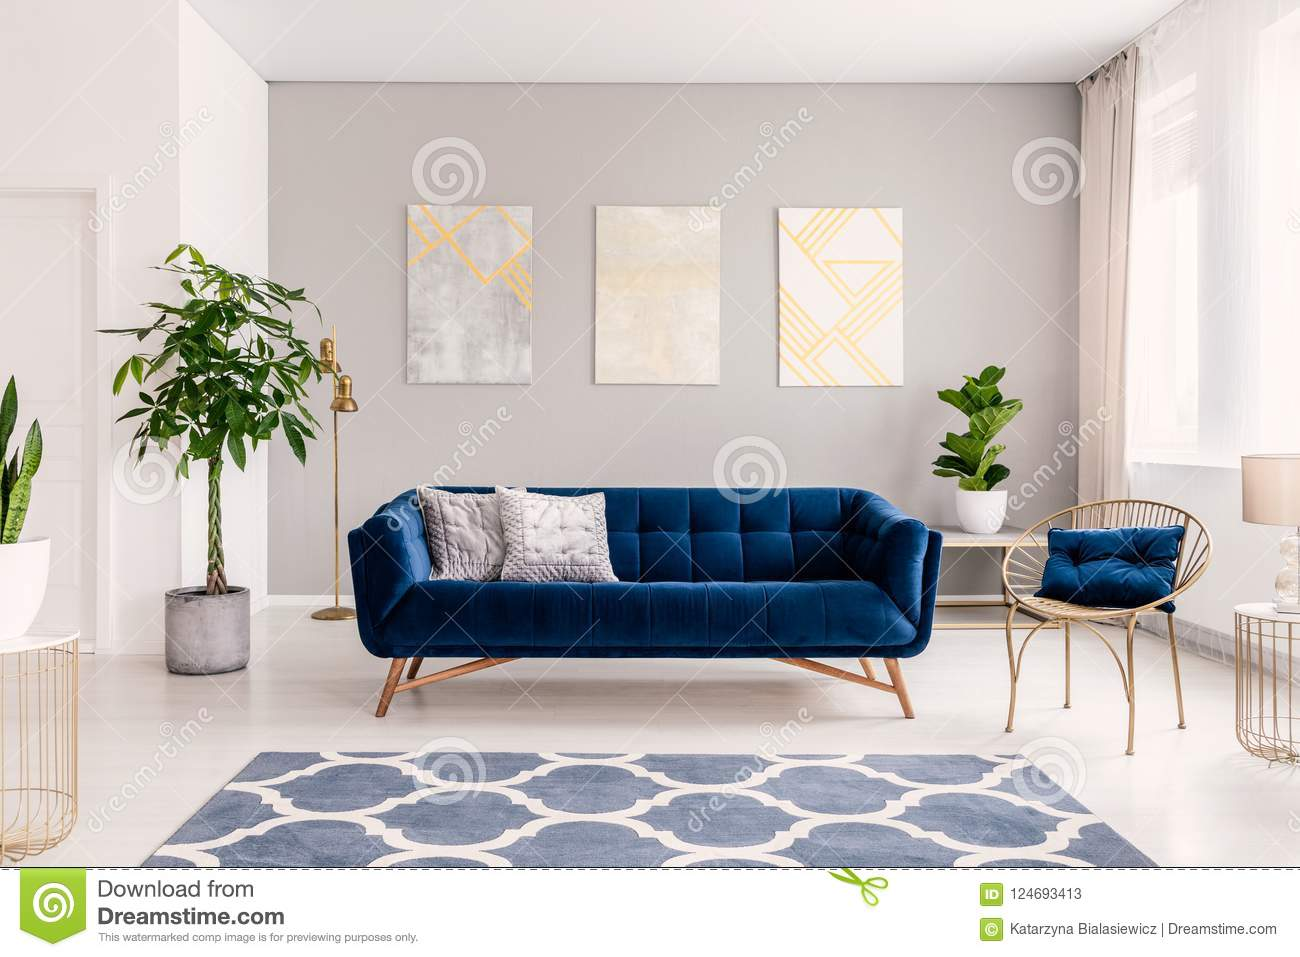 Royal Blue Couch With Two Pillows Standing In Real Photo Of Bright Living Room Interior With Fresh Plants Window With Curtains T Stock Image Image Of Flat Lounge 124693413